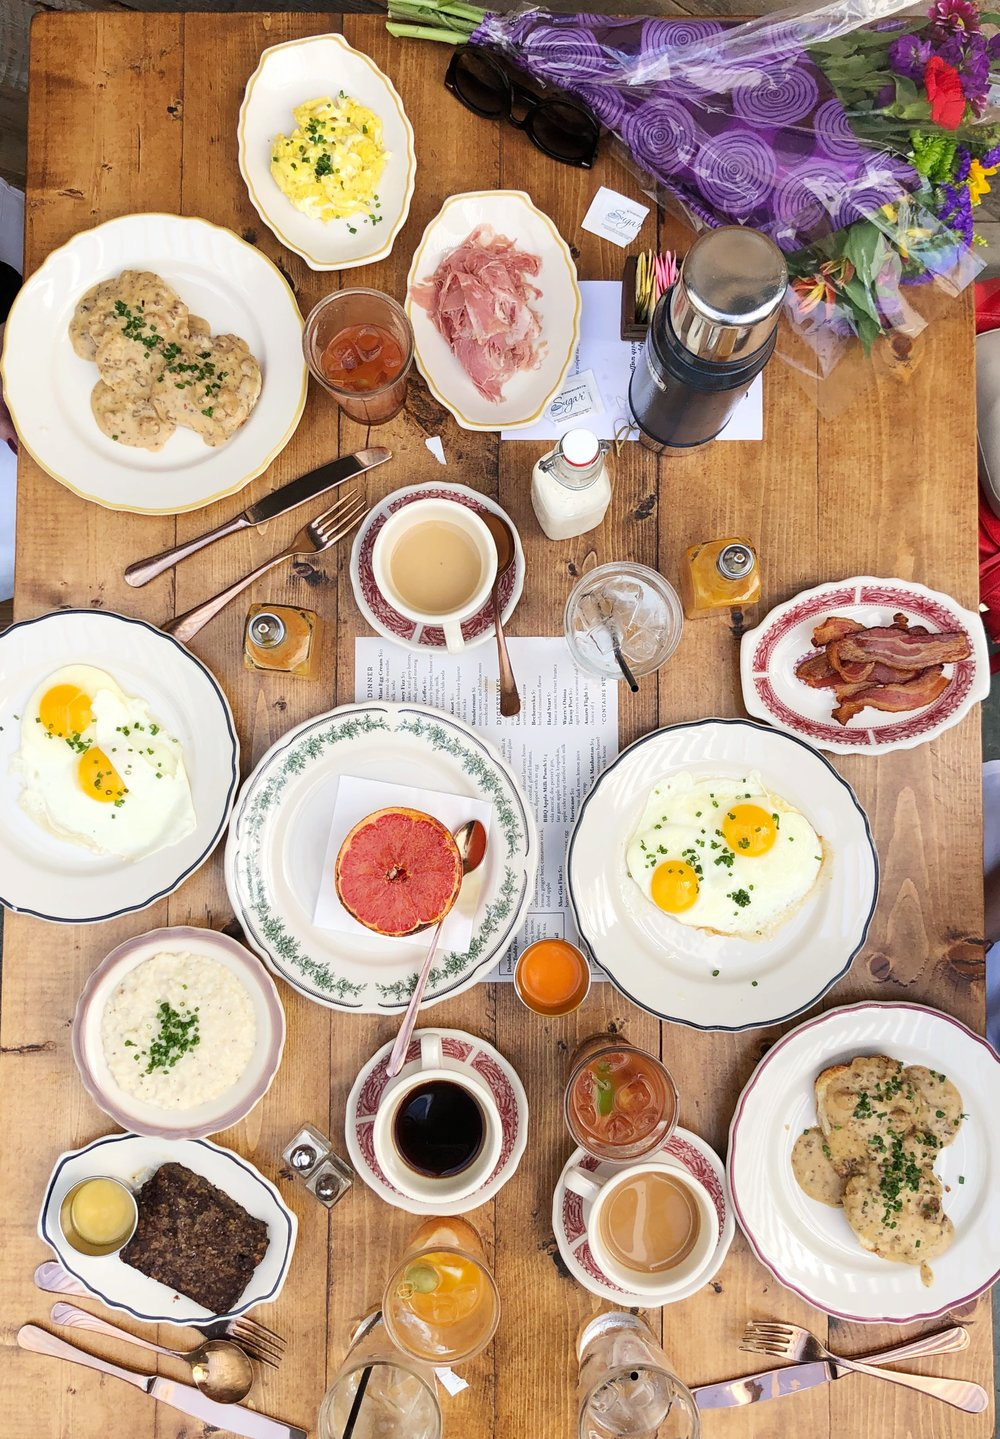 haberdish-noda-charlotte-nc-brunch